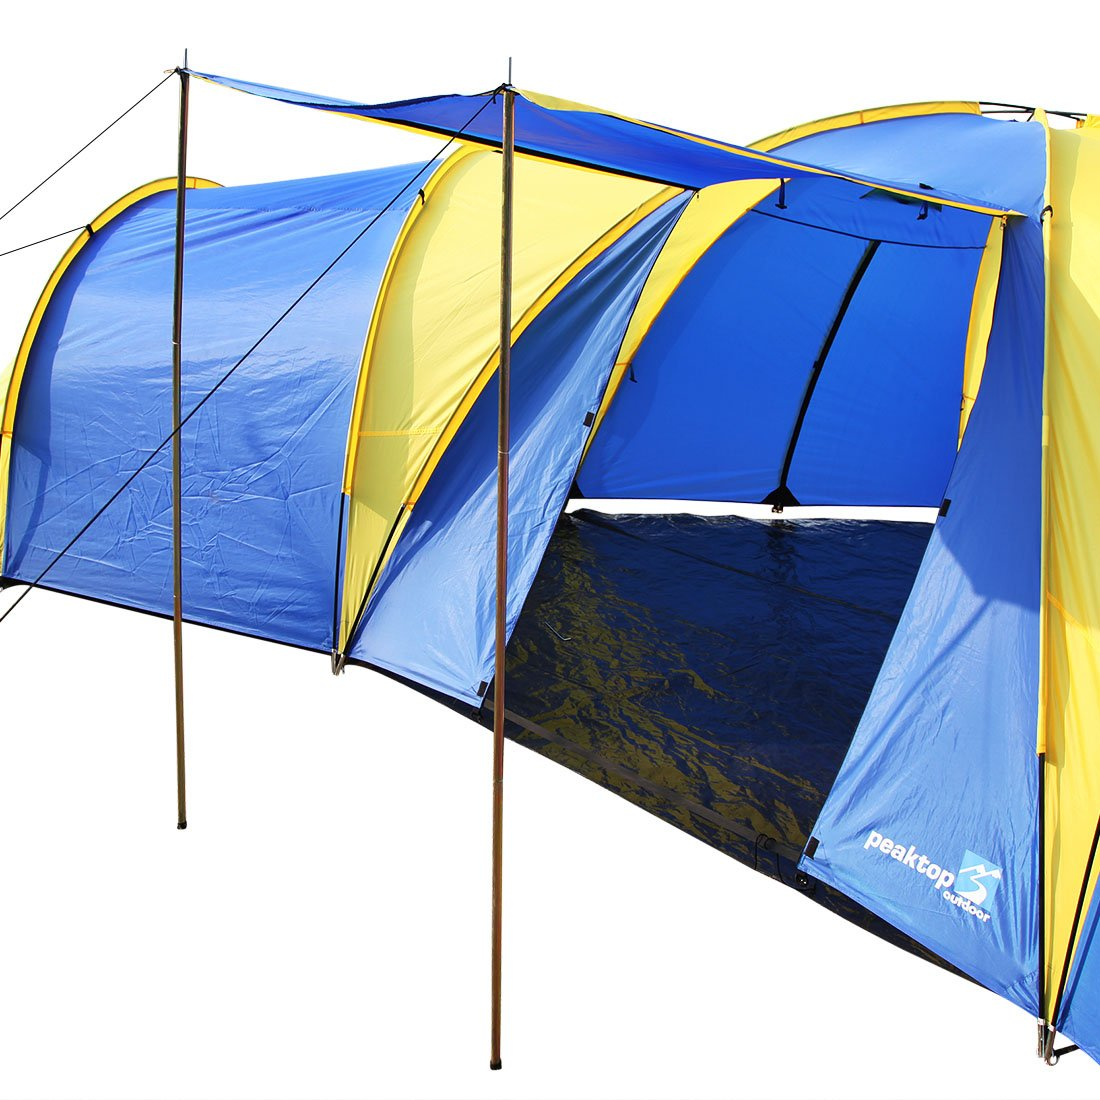 Peaktop 3 1 Rooms 8 Person Large Family Camping Tent Dome Hiking 3000mm Waterproof UV Coated Amazoncouk Sports Outdoors